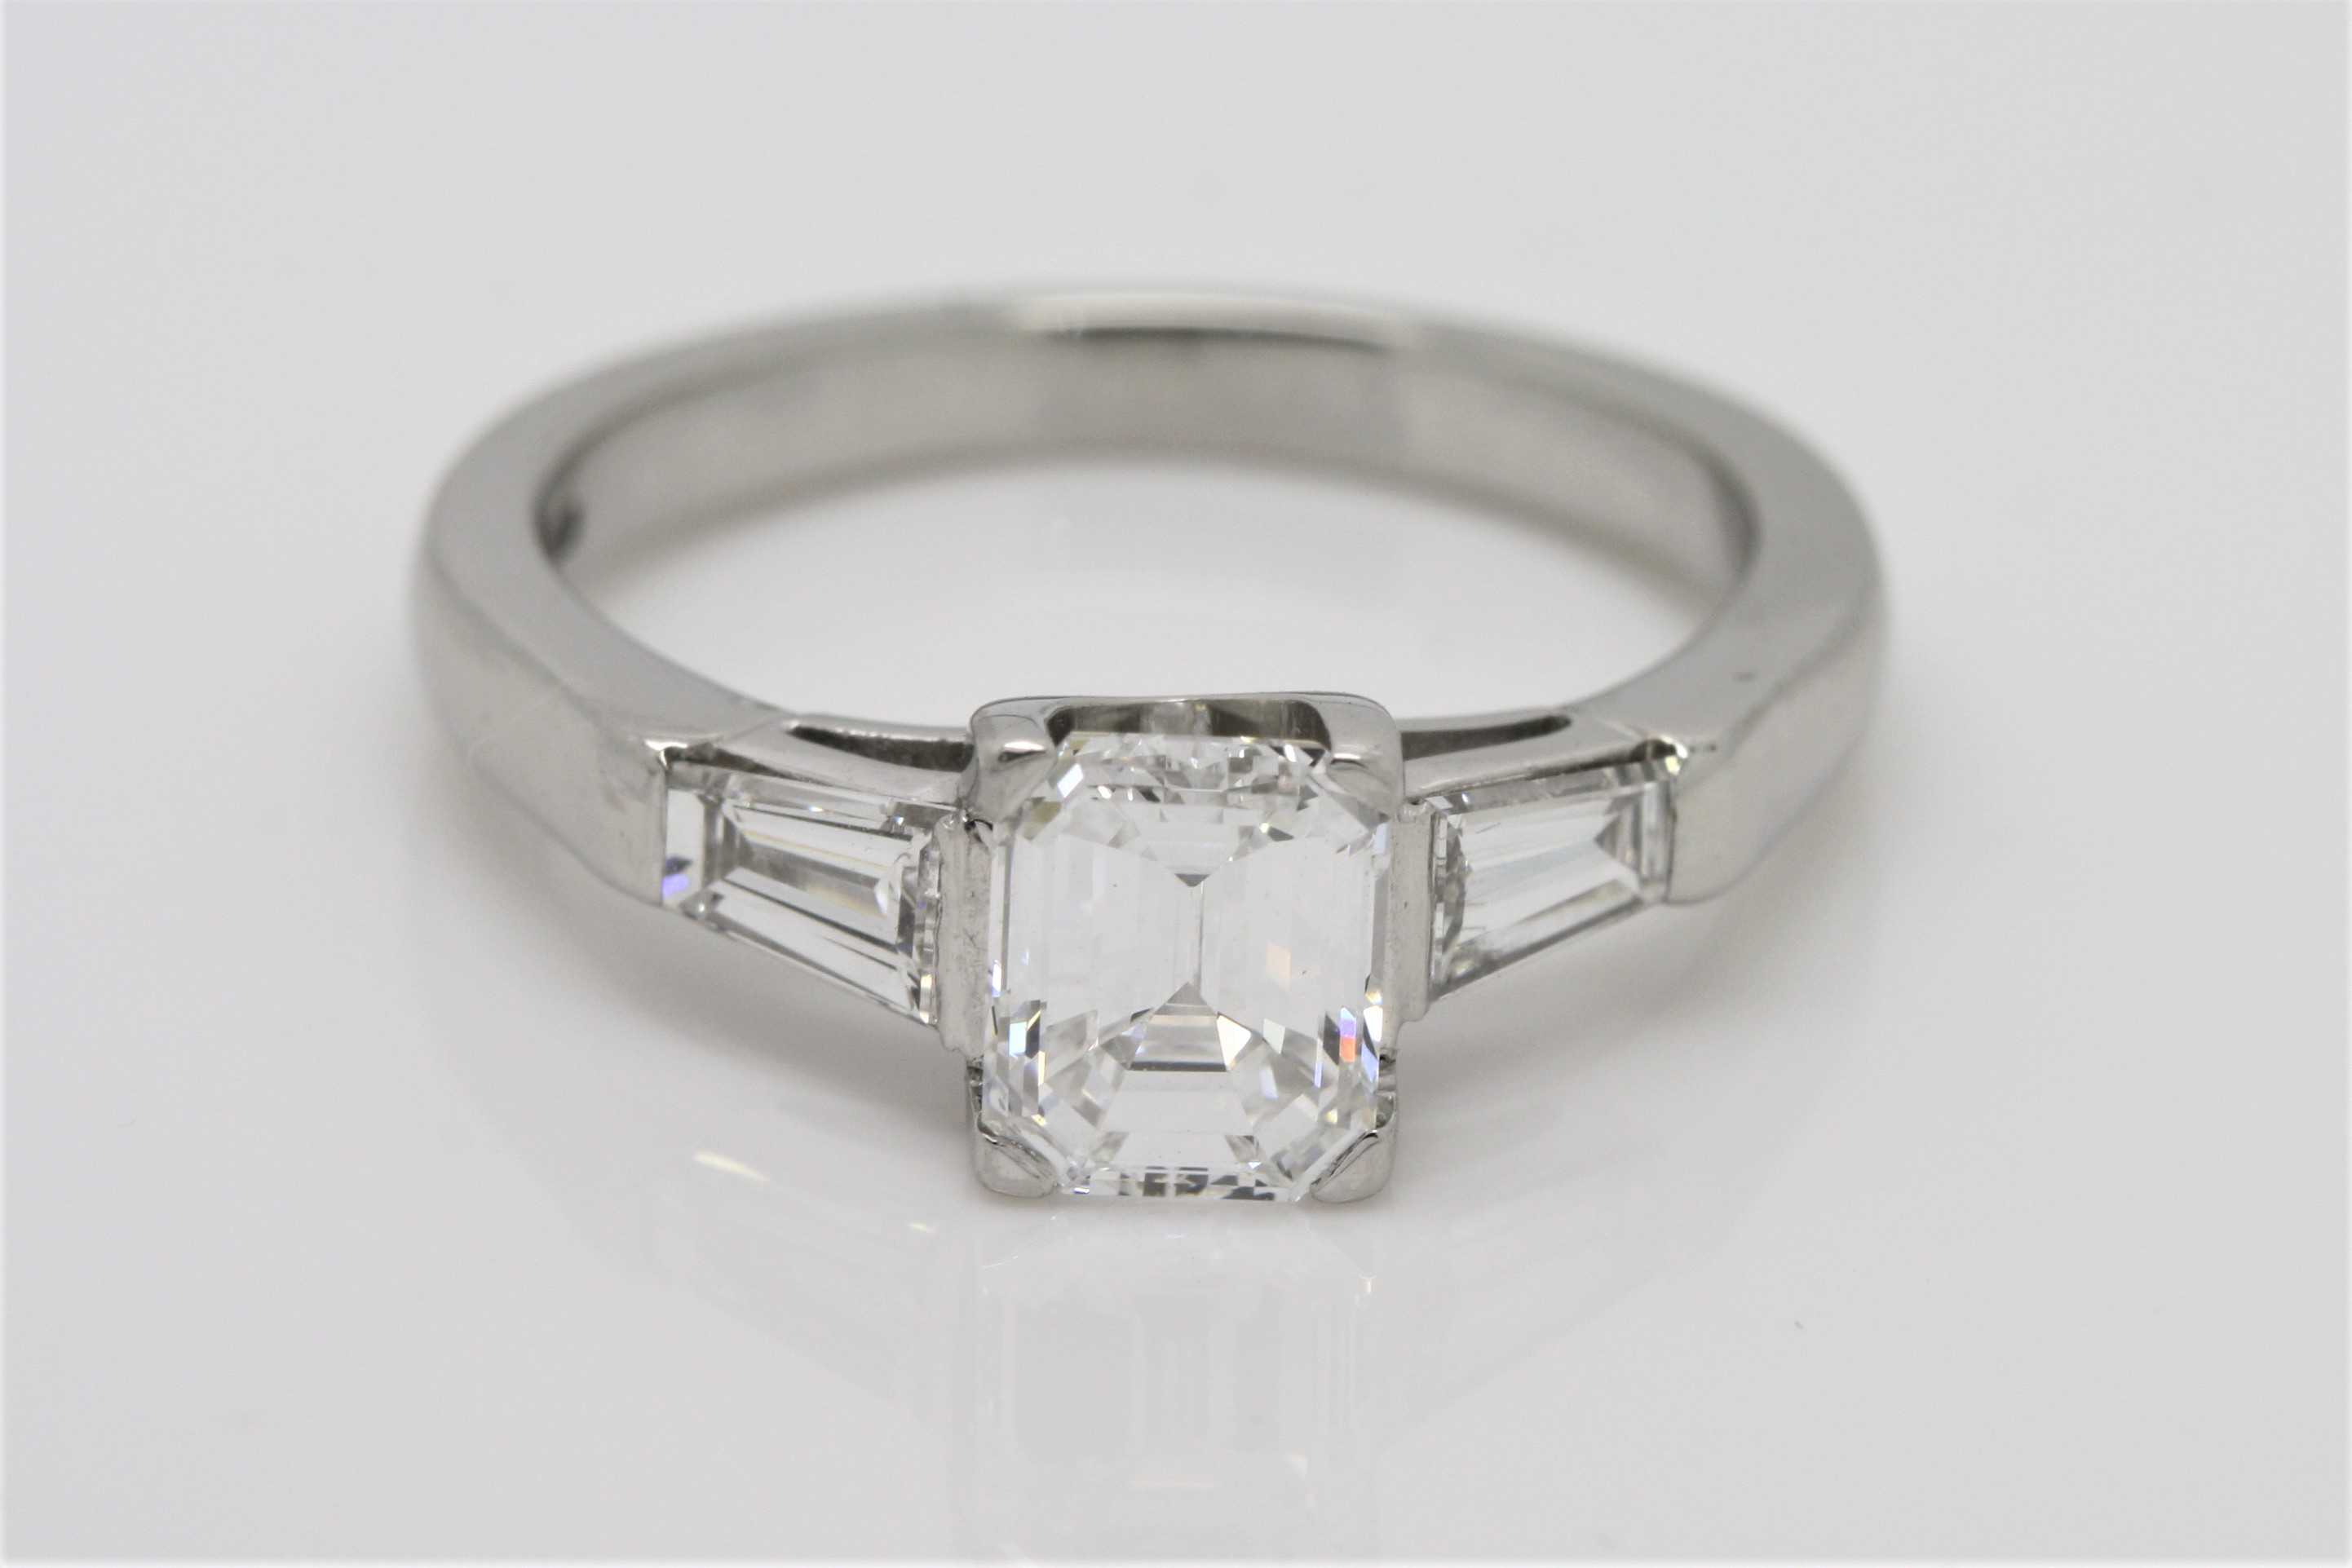 Emerald Cut Diamond Solitaire With Diamond Tapered Baguette Side Stones In Platinum Ring Regarding Heart Shaped Engagement Rings With Tapered Baguette Side Stones (View 14 of 25)